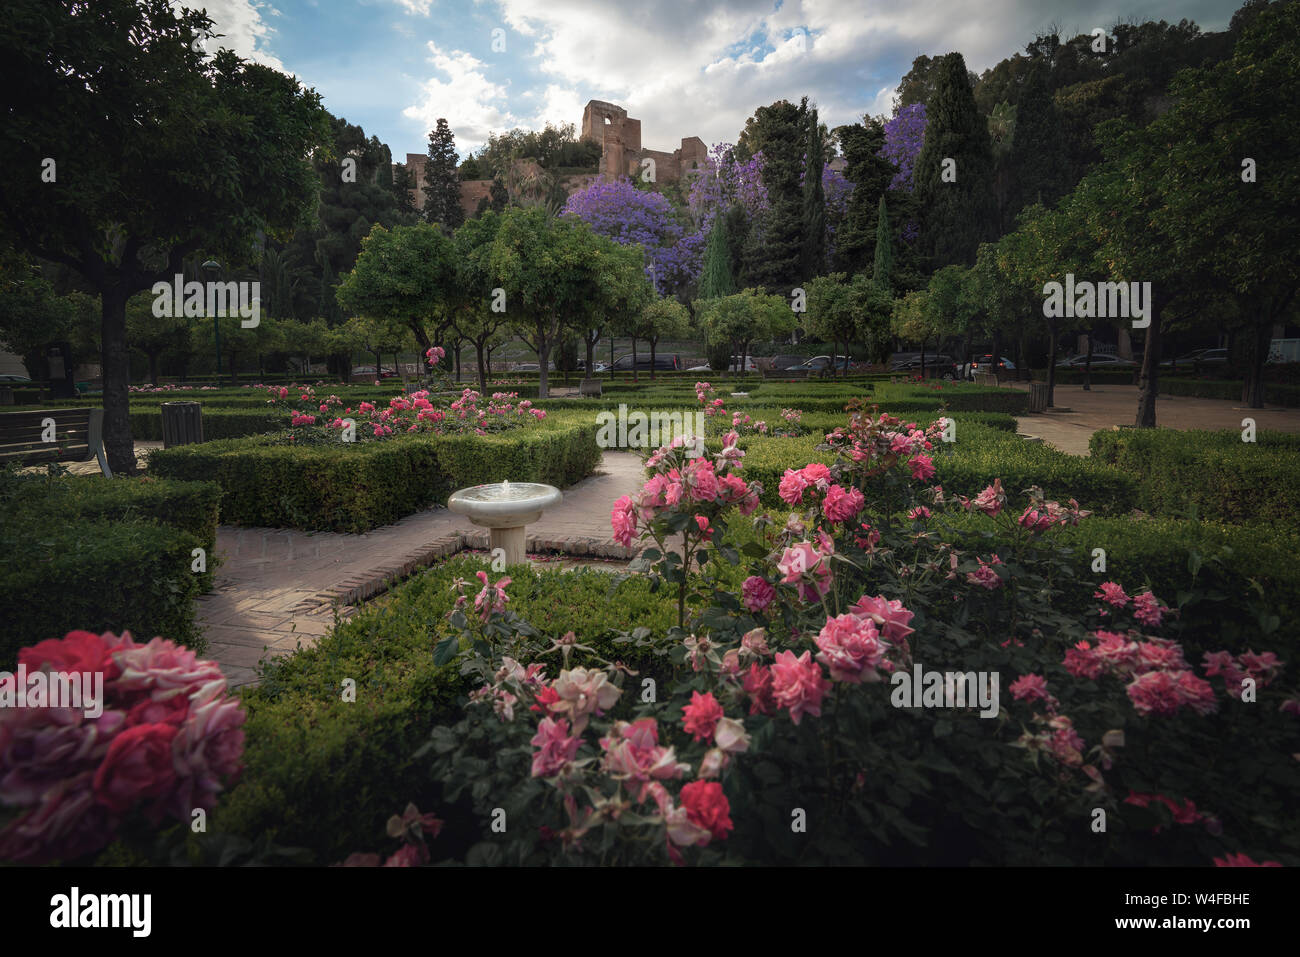 Flowers at Pedro Luis Alonso Gardens with Alcazaba Castle on background - Malaga, Andalusia, Spain Stock Photo